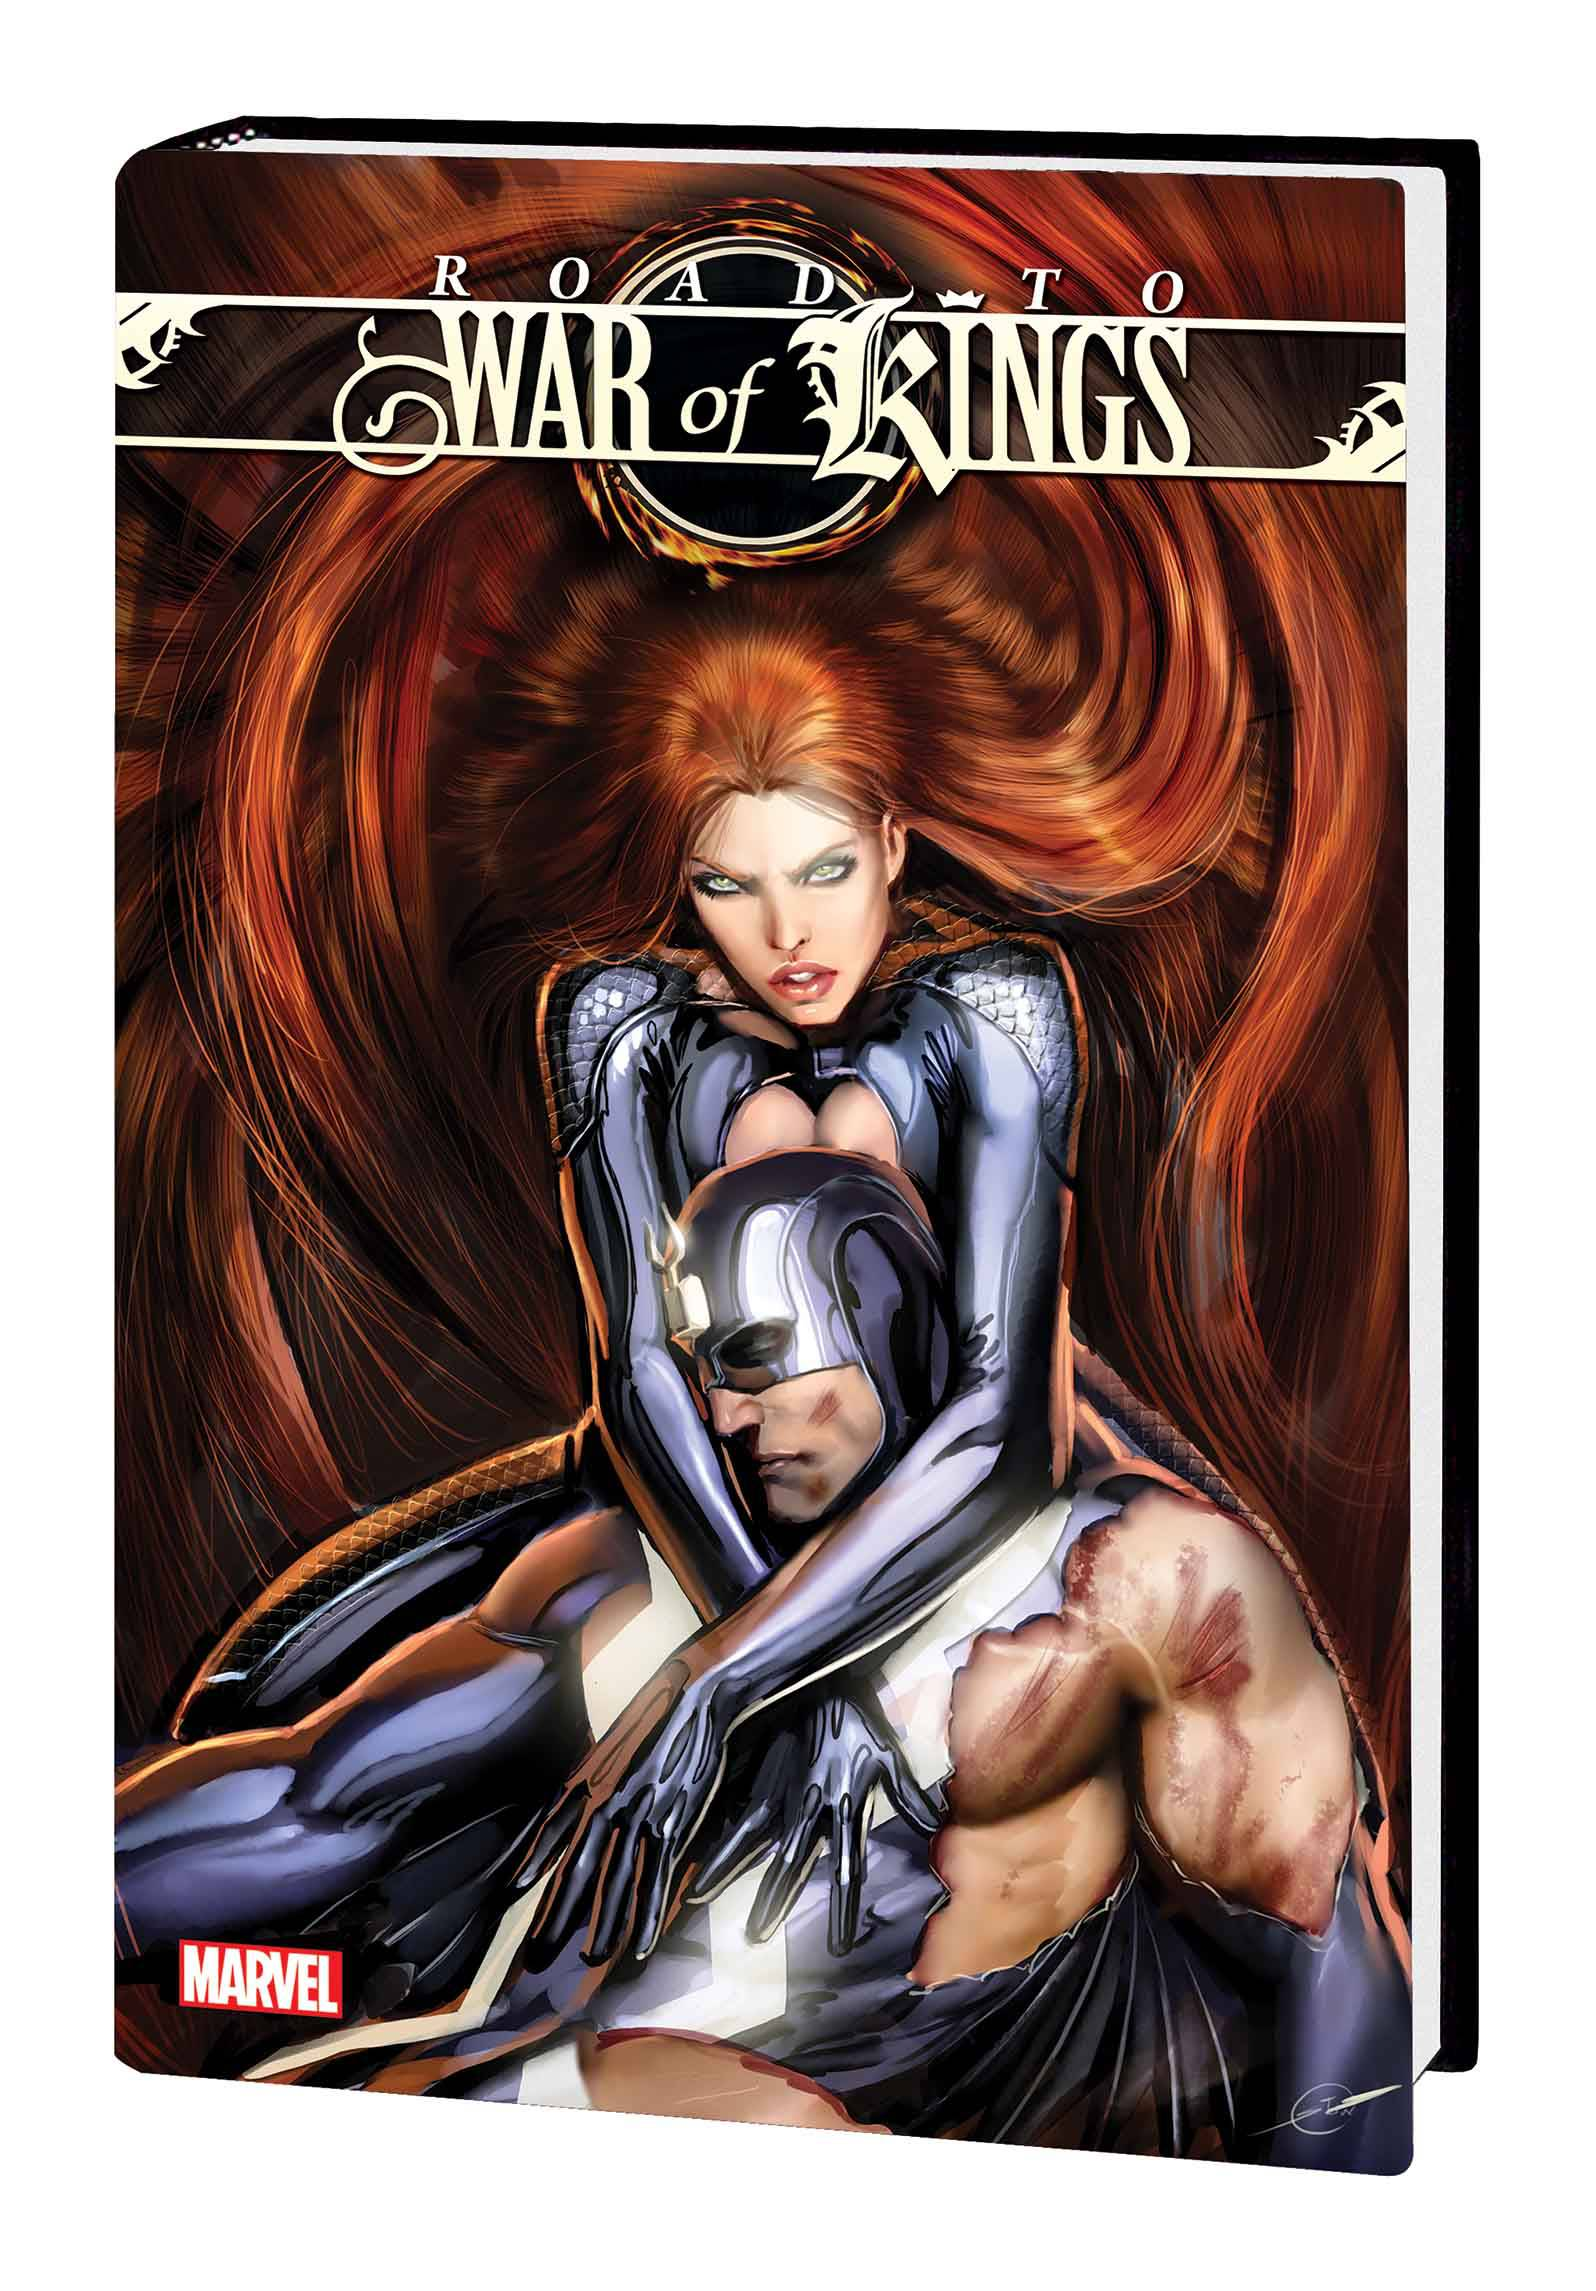 WAR OF KINGS PRELUDE HC ROAD TO WAR OF KINGS OMNIBUS